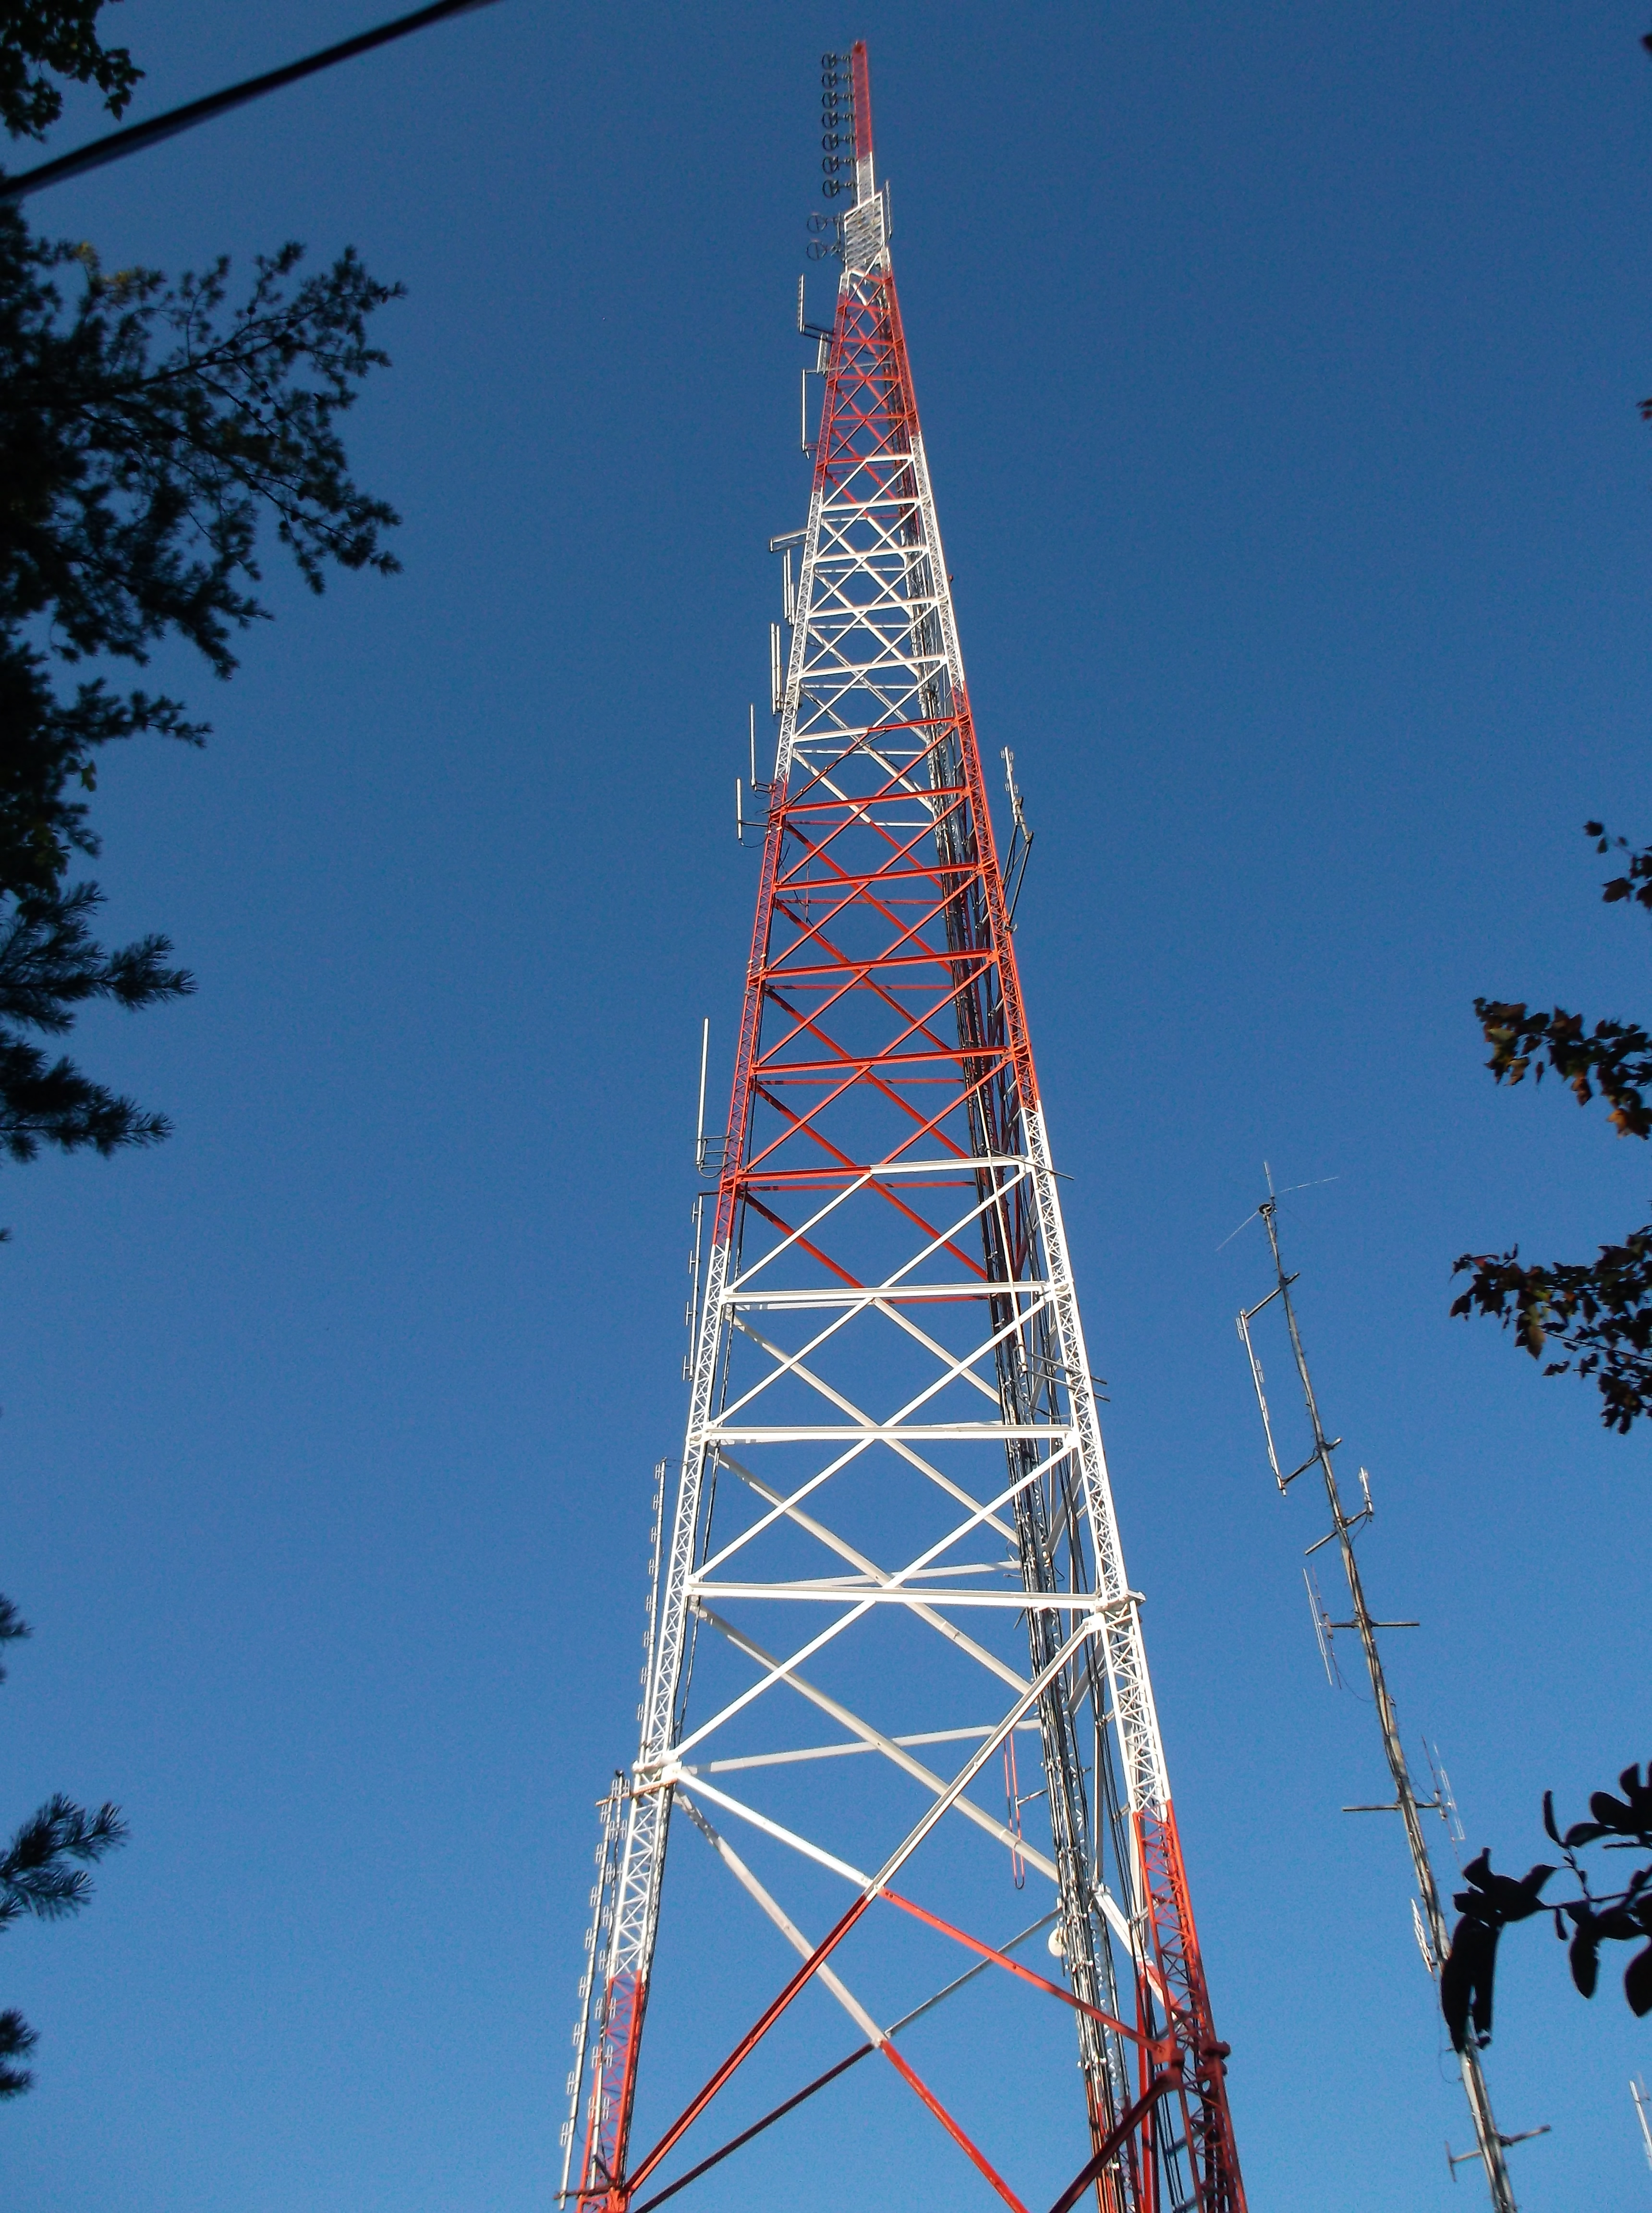 WIVK-FM tower, home of WB4GBI 146.94